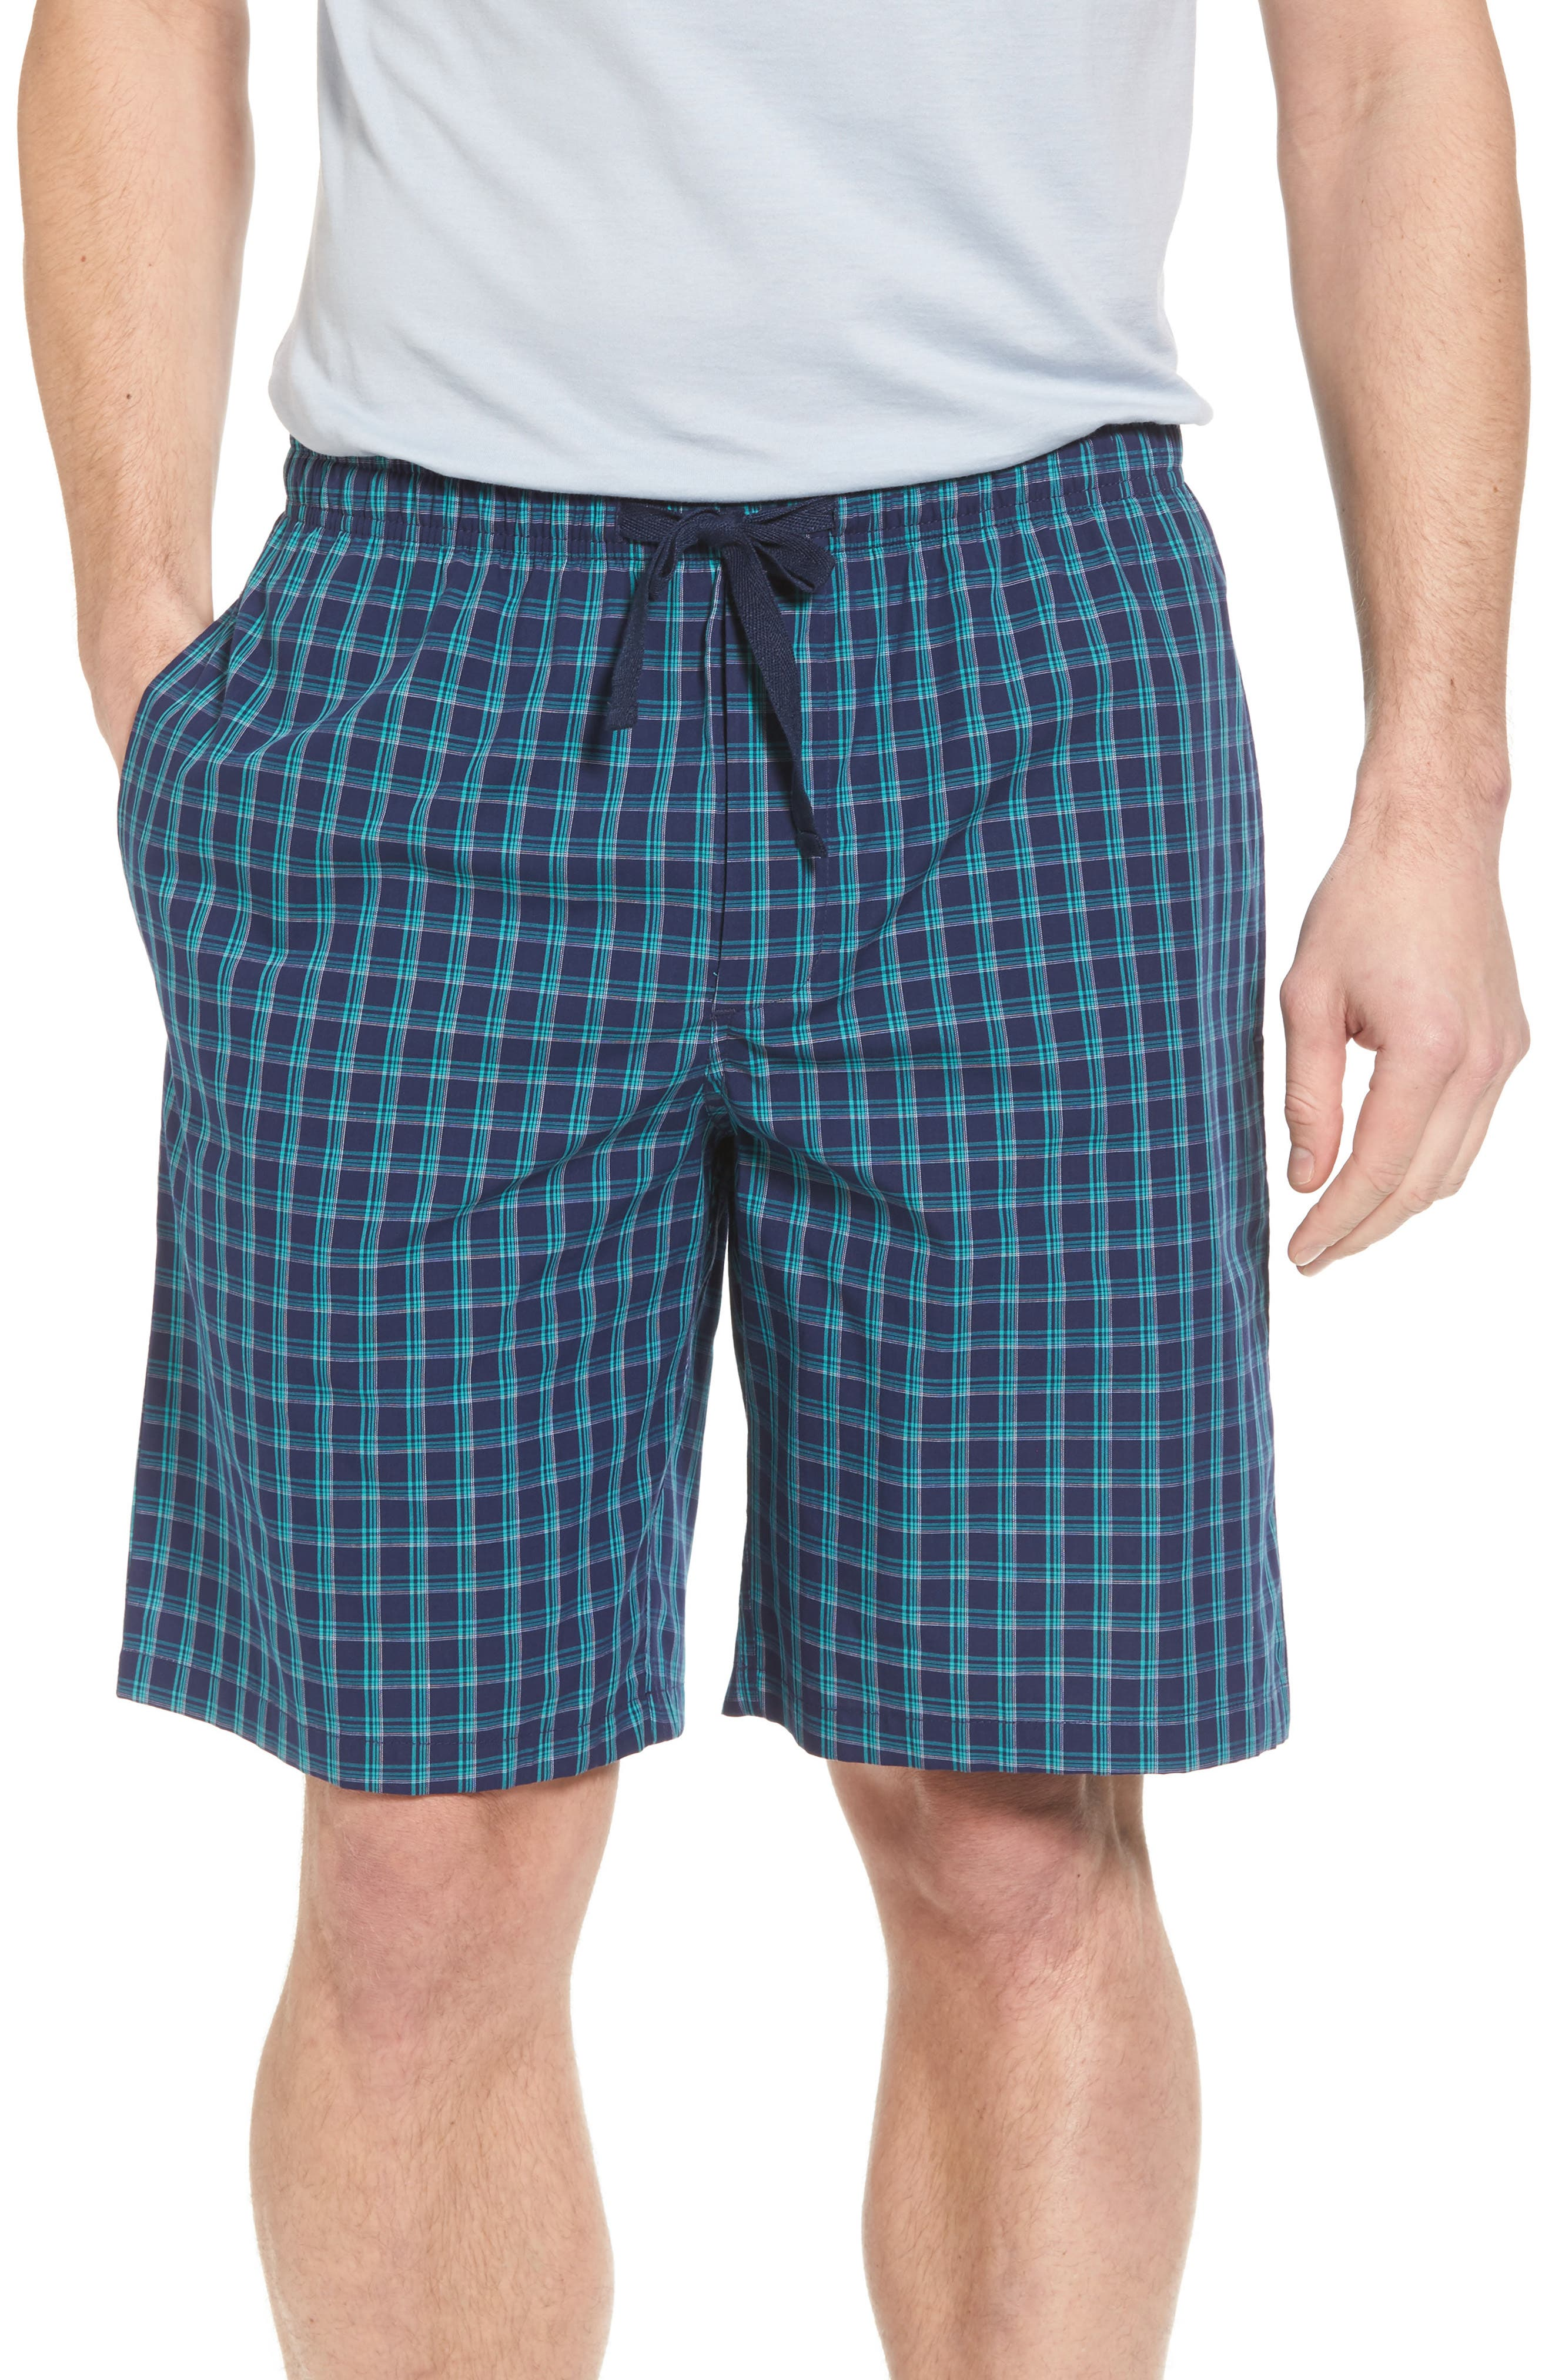 Poplin Lounge Shorts,                         Main,                         color, Navy Peacoat - Teal Plaid